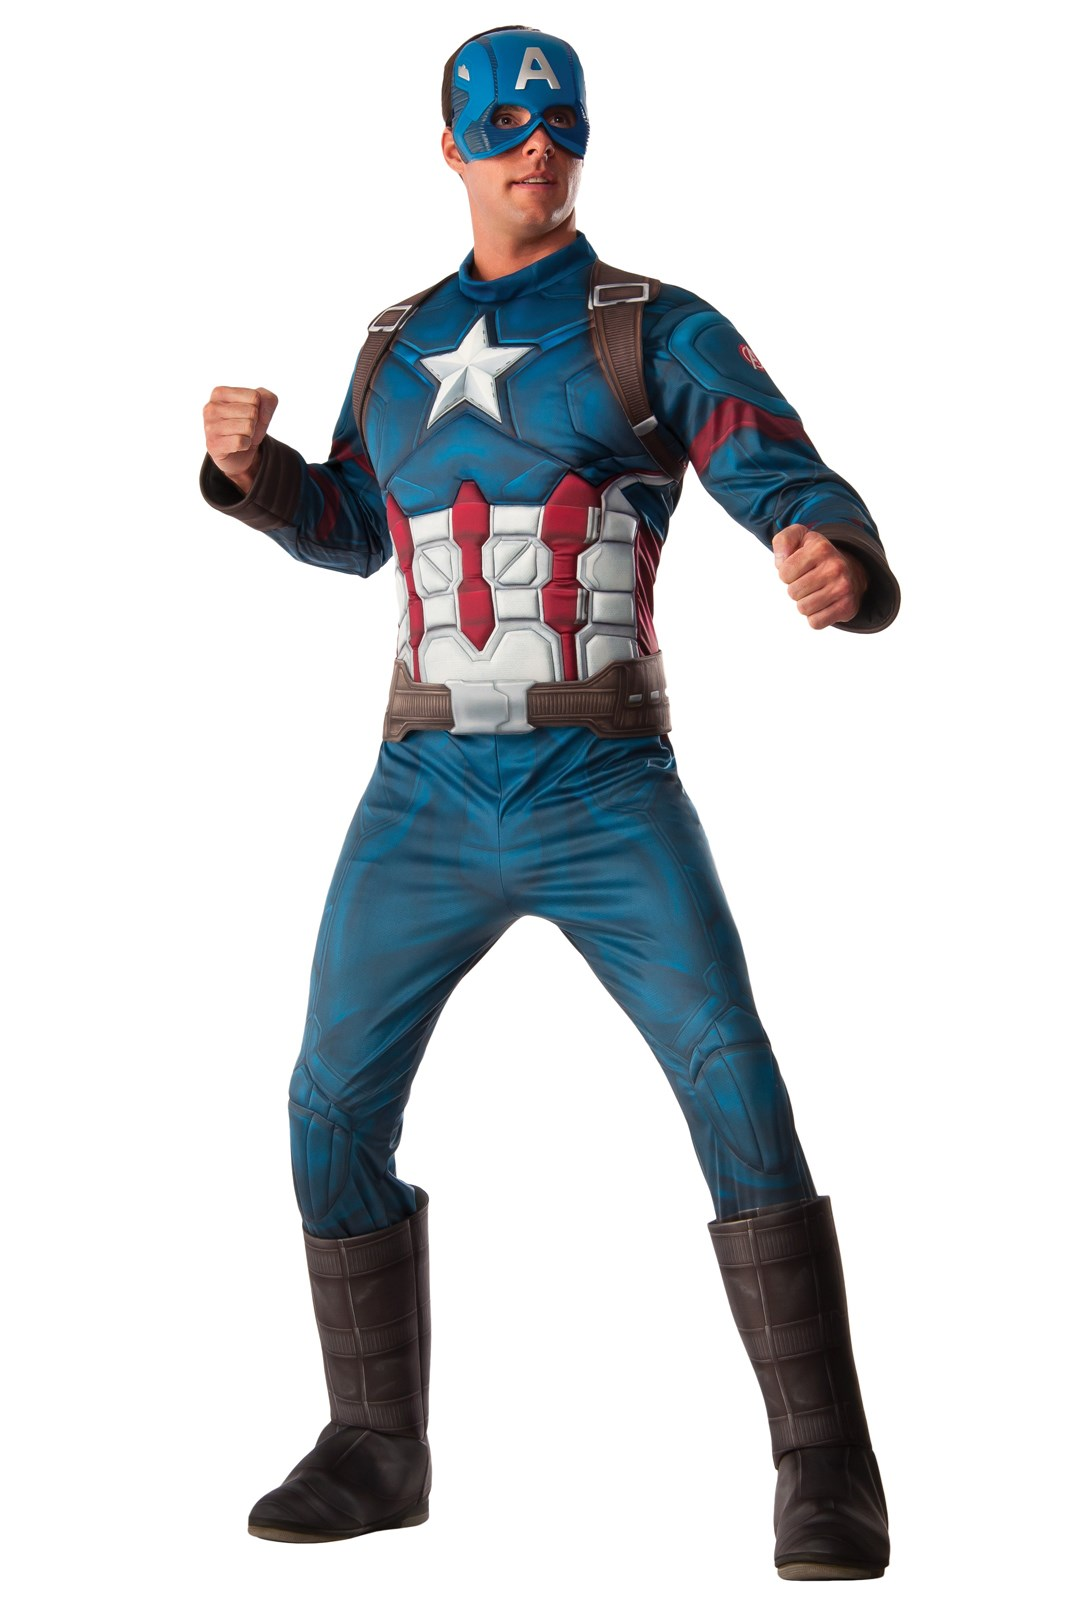 Avengers 2 - Age of Ultron: Captain America Deluxe Costume For Adults One-Size